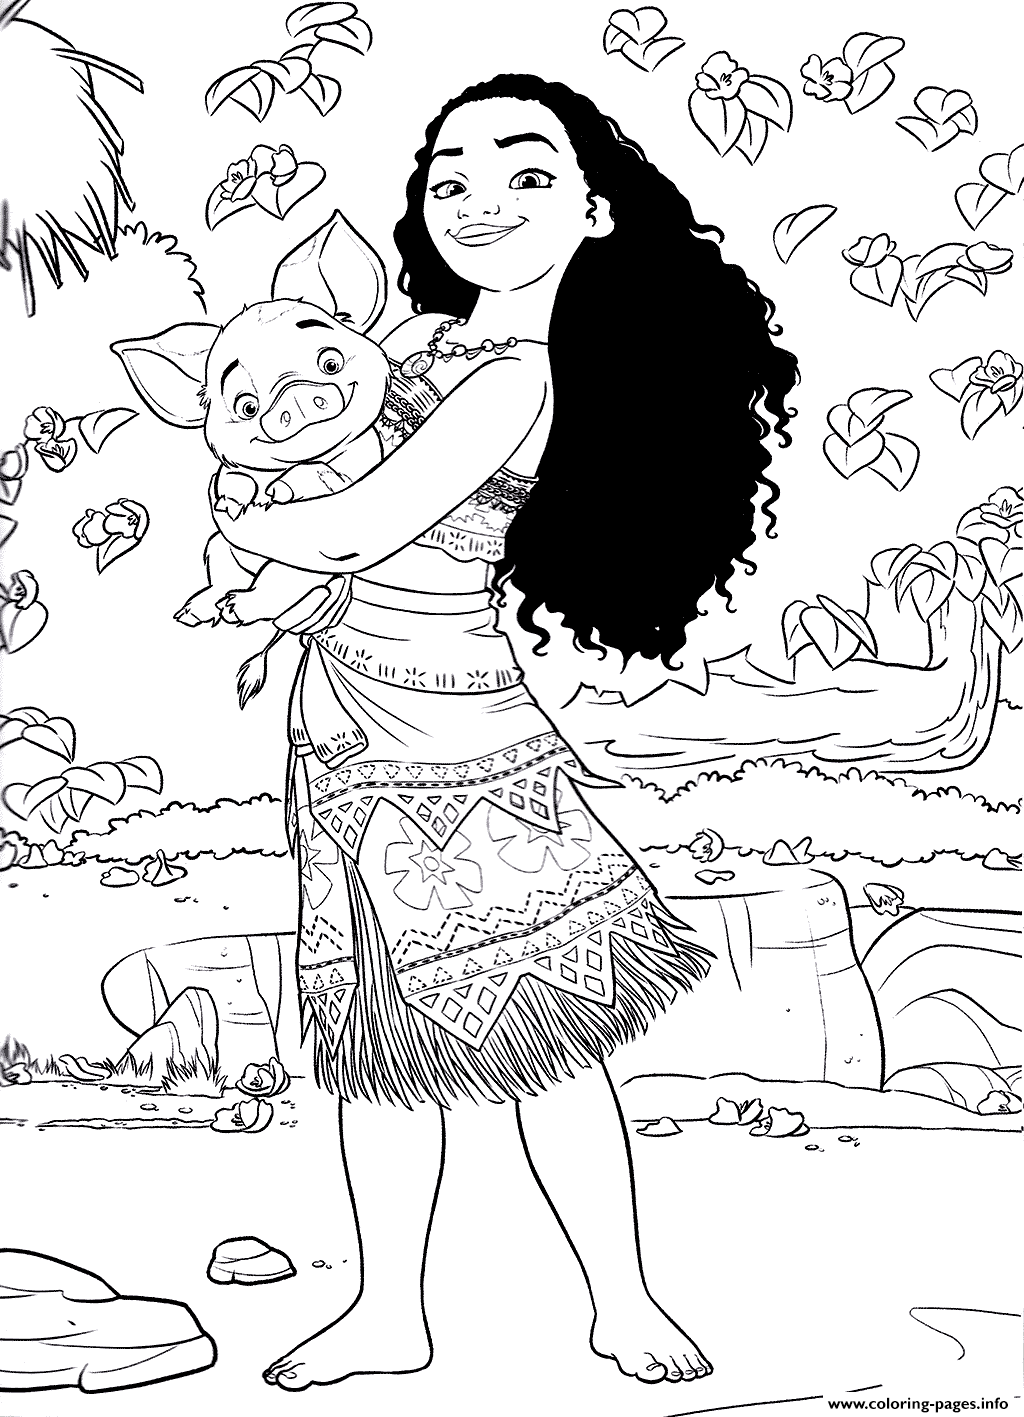 Print princess moana disney coloring pages | preschool 2017-18 ...